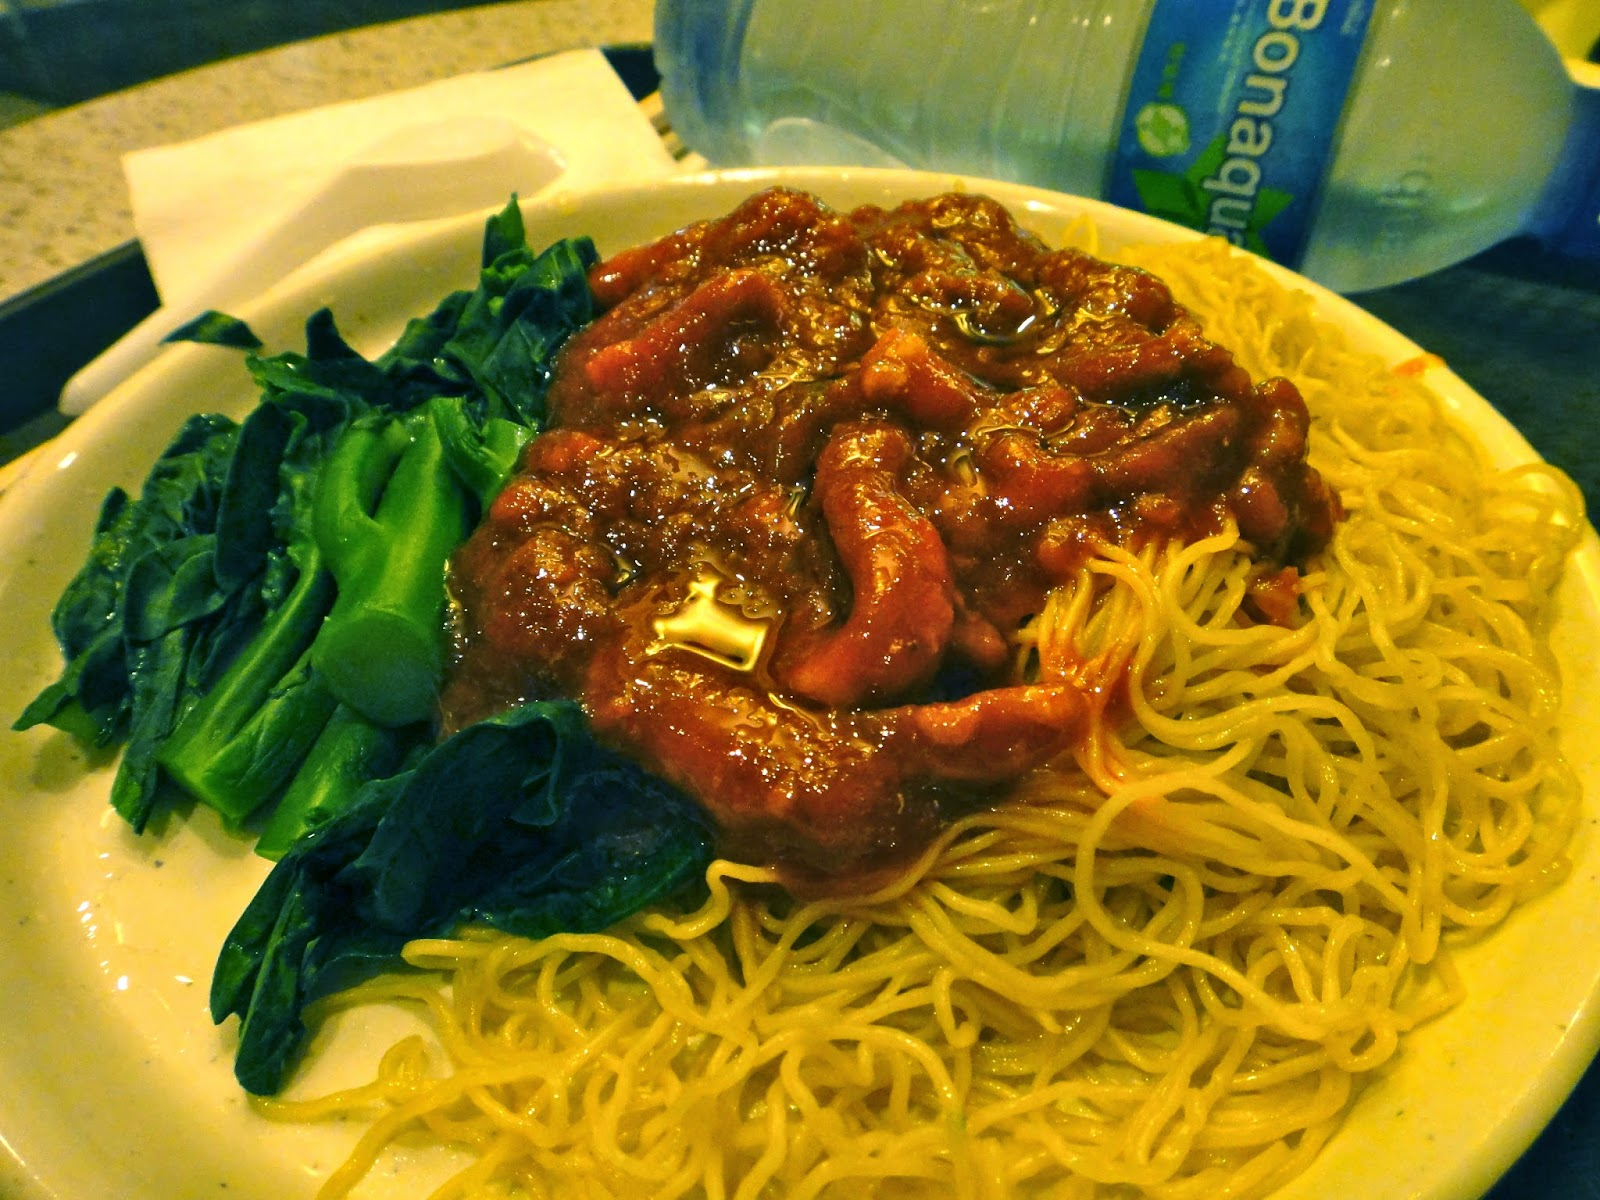 Minced Meat and Mushroom Noodles The Venetian Food Court Macao